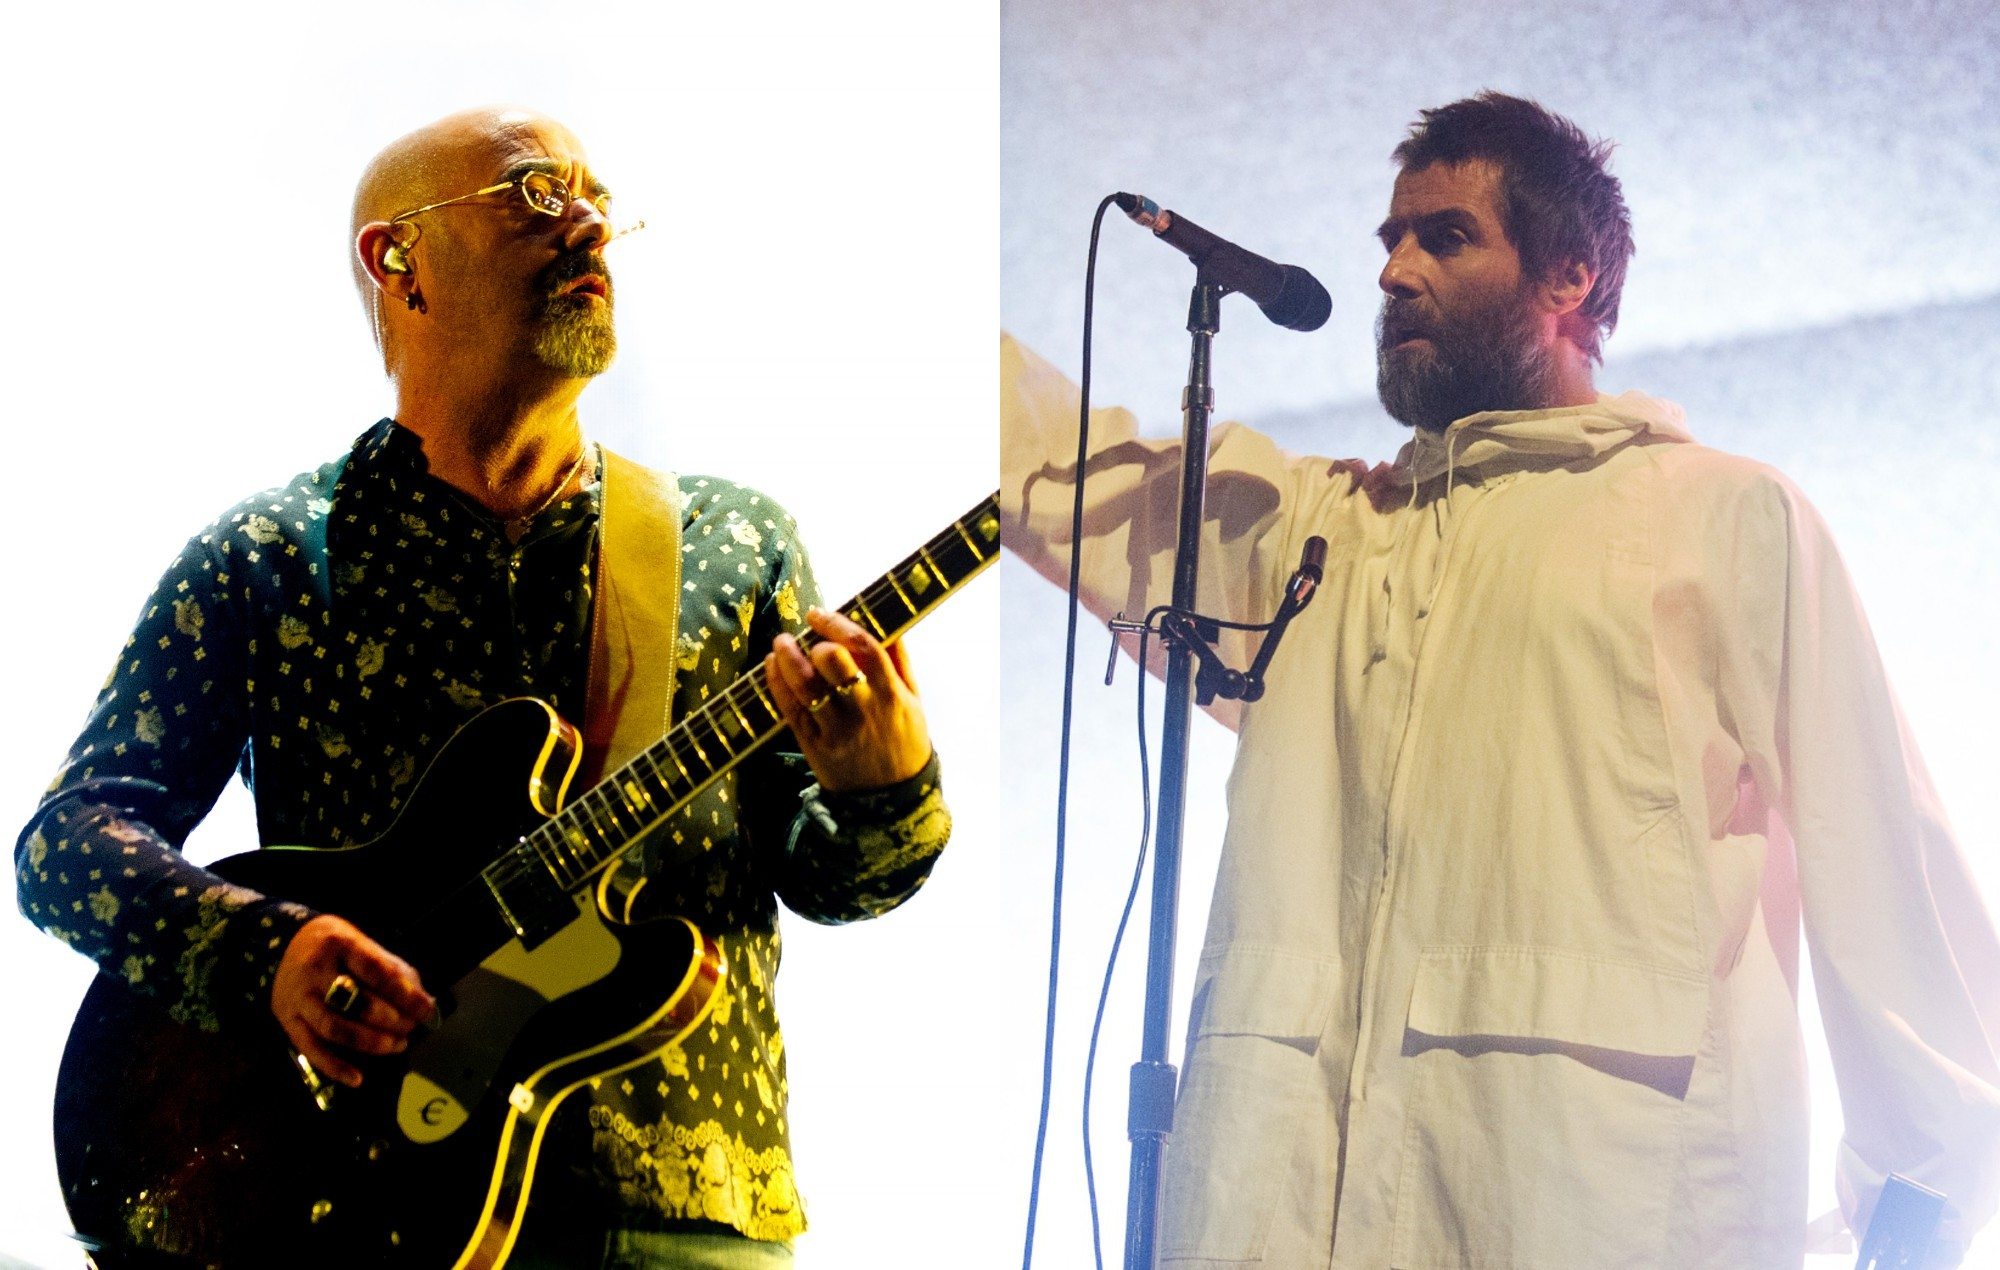 """Bonehead asks Liam Gallagher for Oasis reunion: """"We really should get back together"""""""